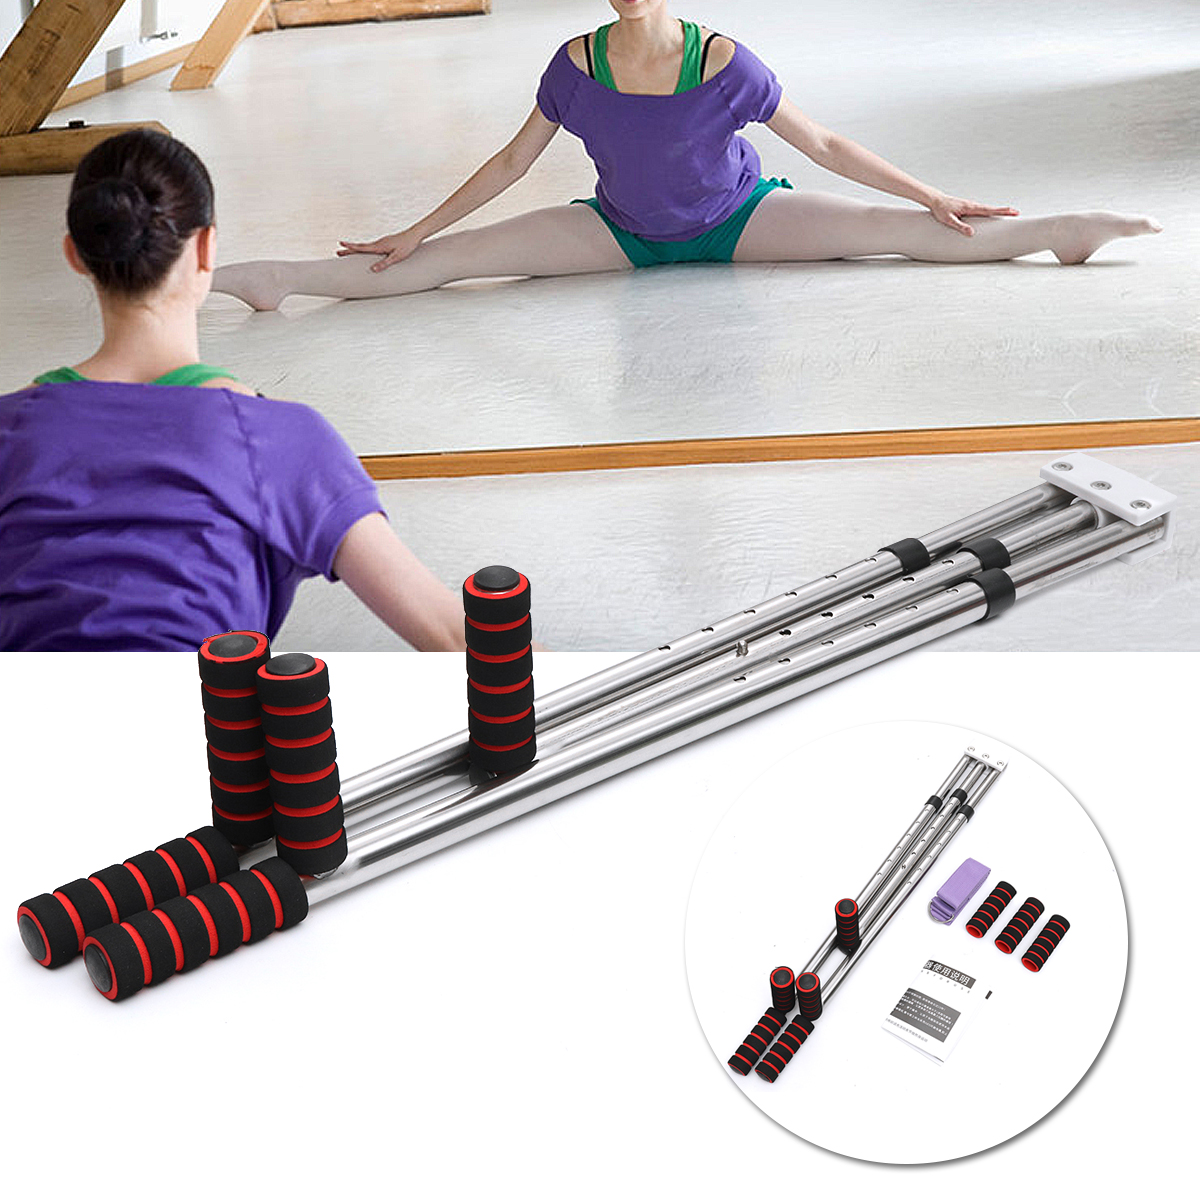 1Set Ballet Leg Extension Machine Flexibility Training Split Legs Ligament Stretcher Professional Split Legs Training Equipments